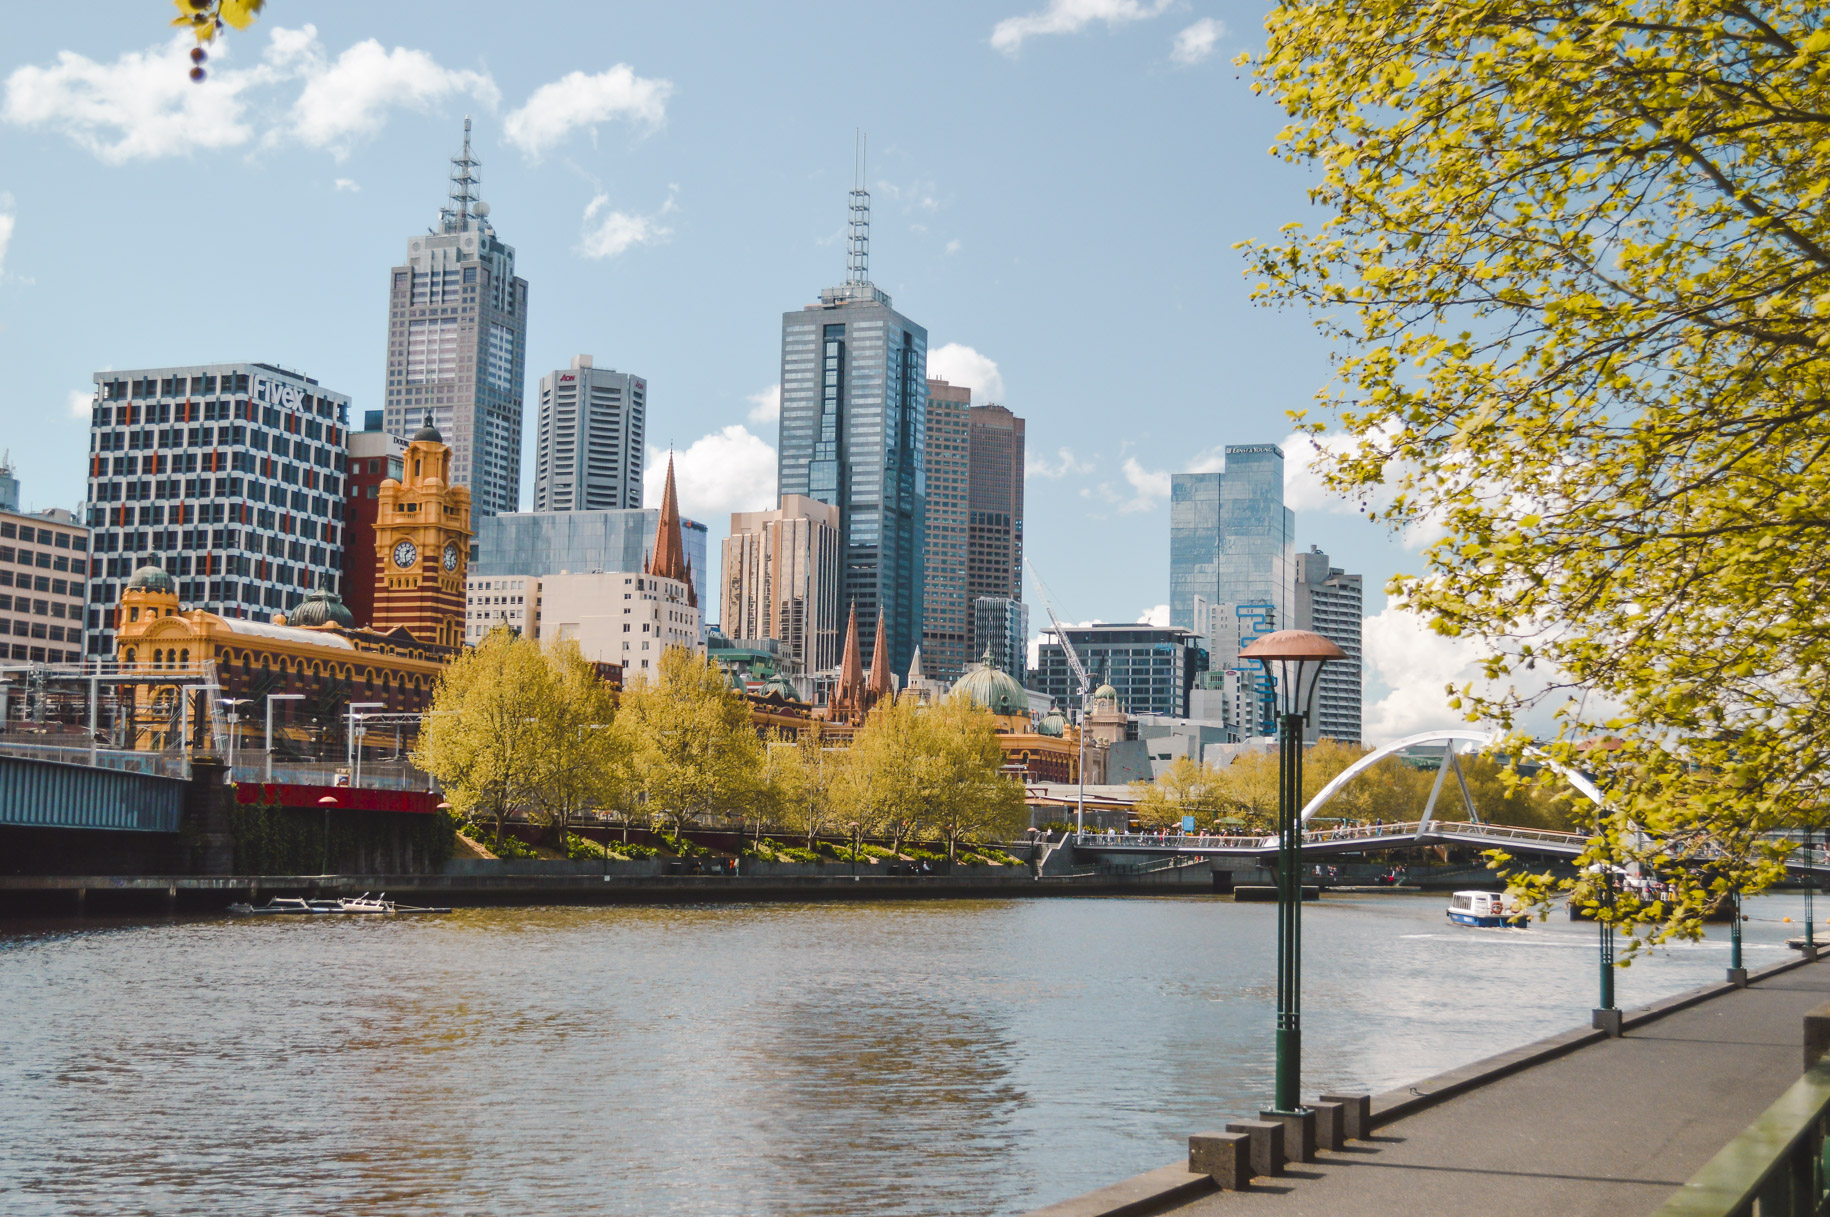 Move to Melbourne for views like this - looking across the Yarra River towards the Melbourne skyline.